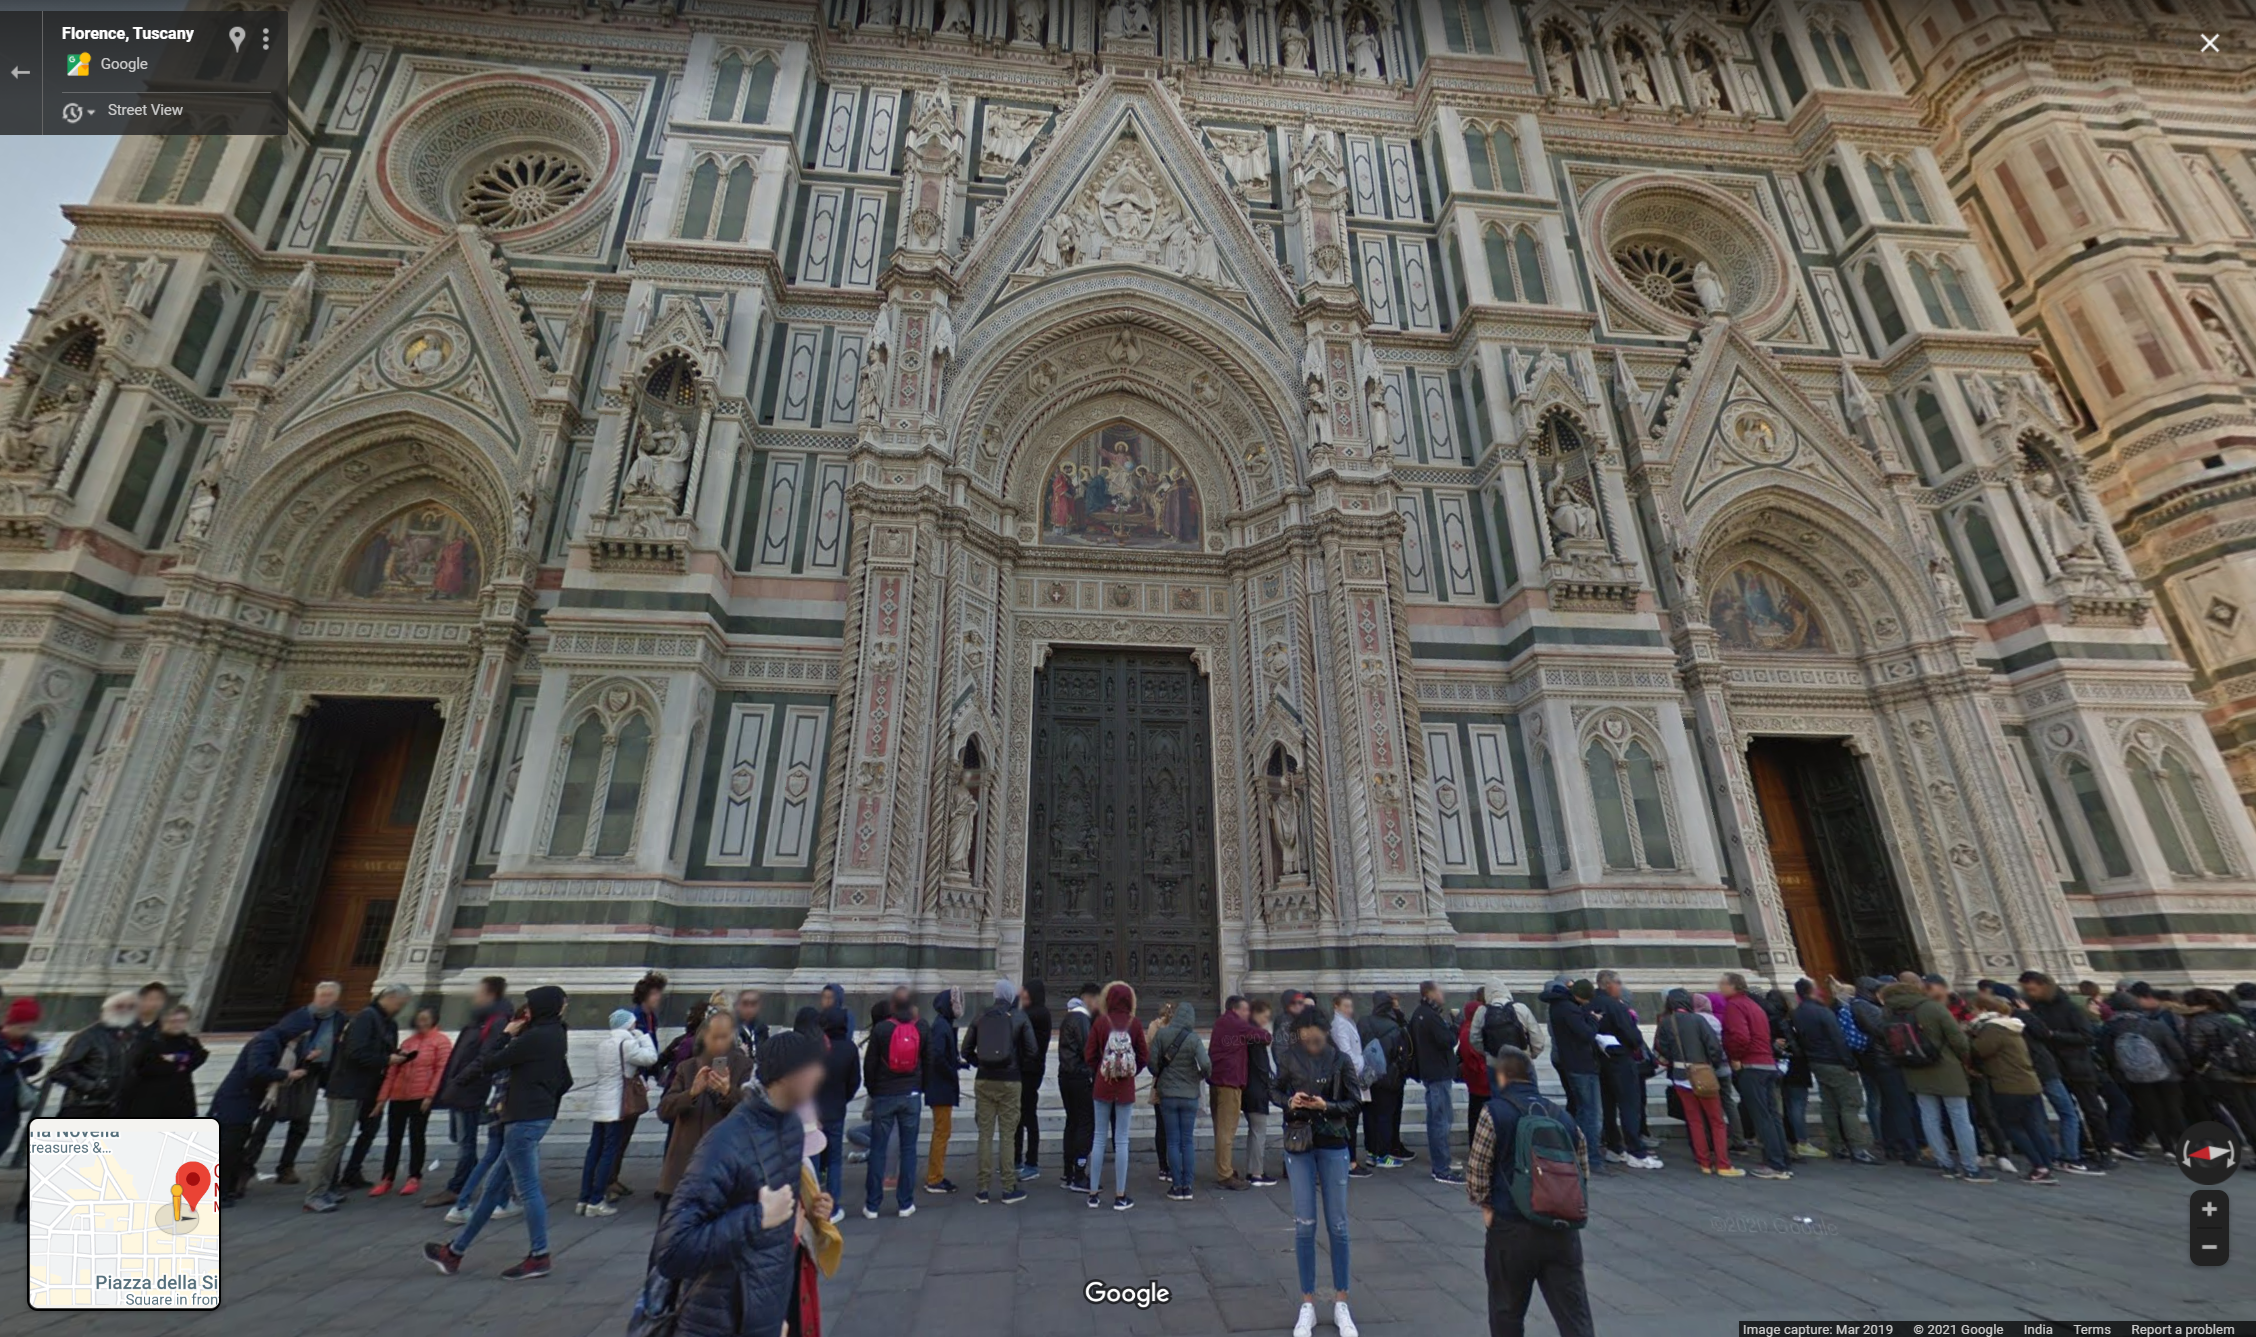 Google Maps Street View of Florence, The Duomo